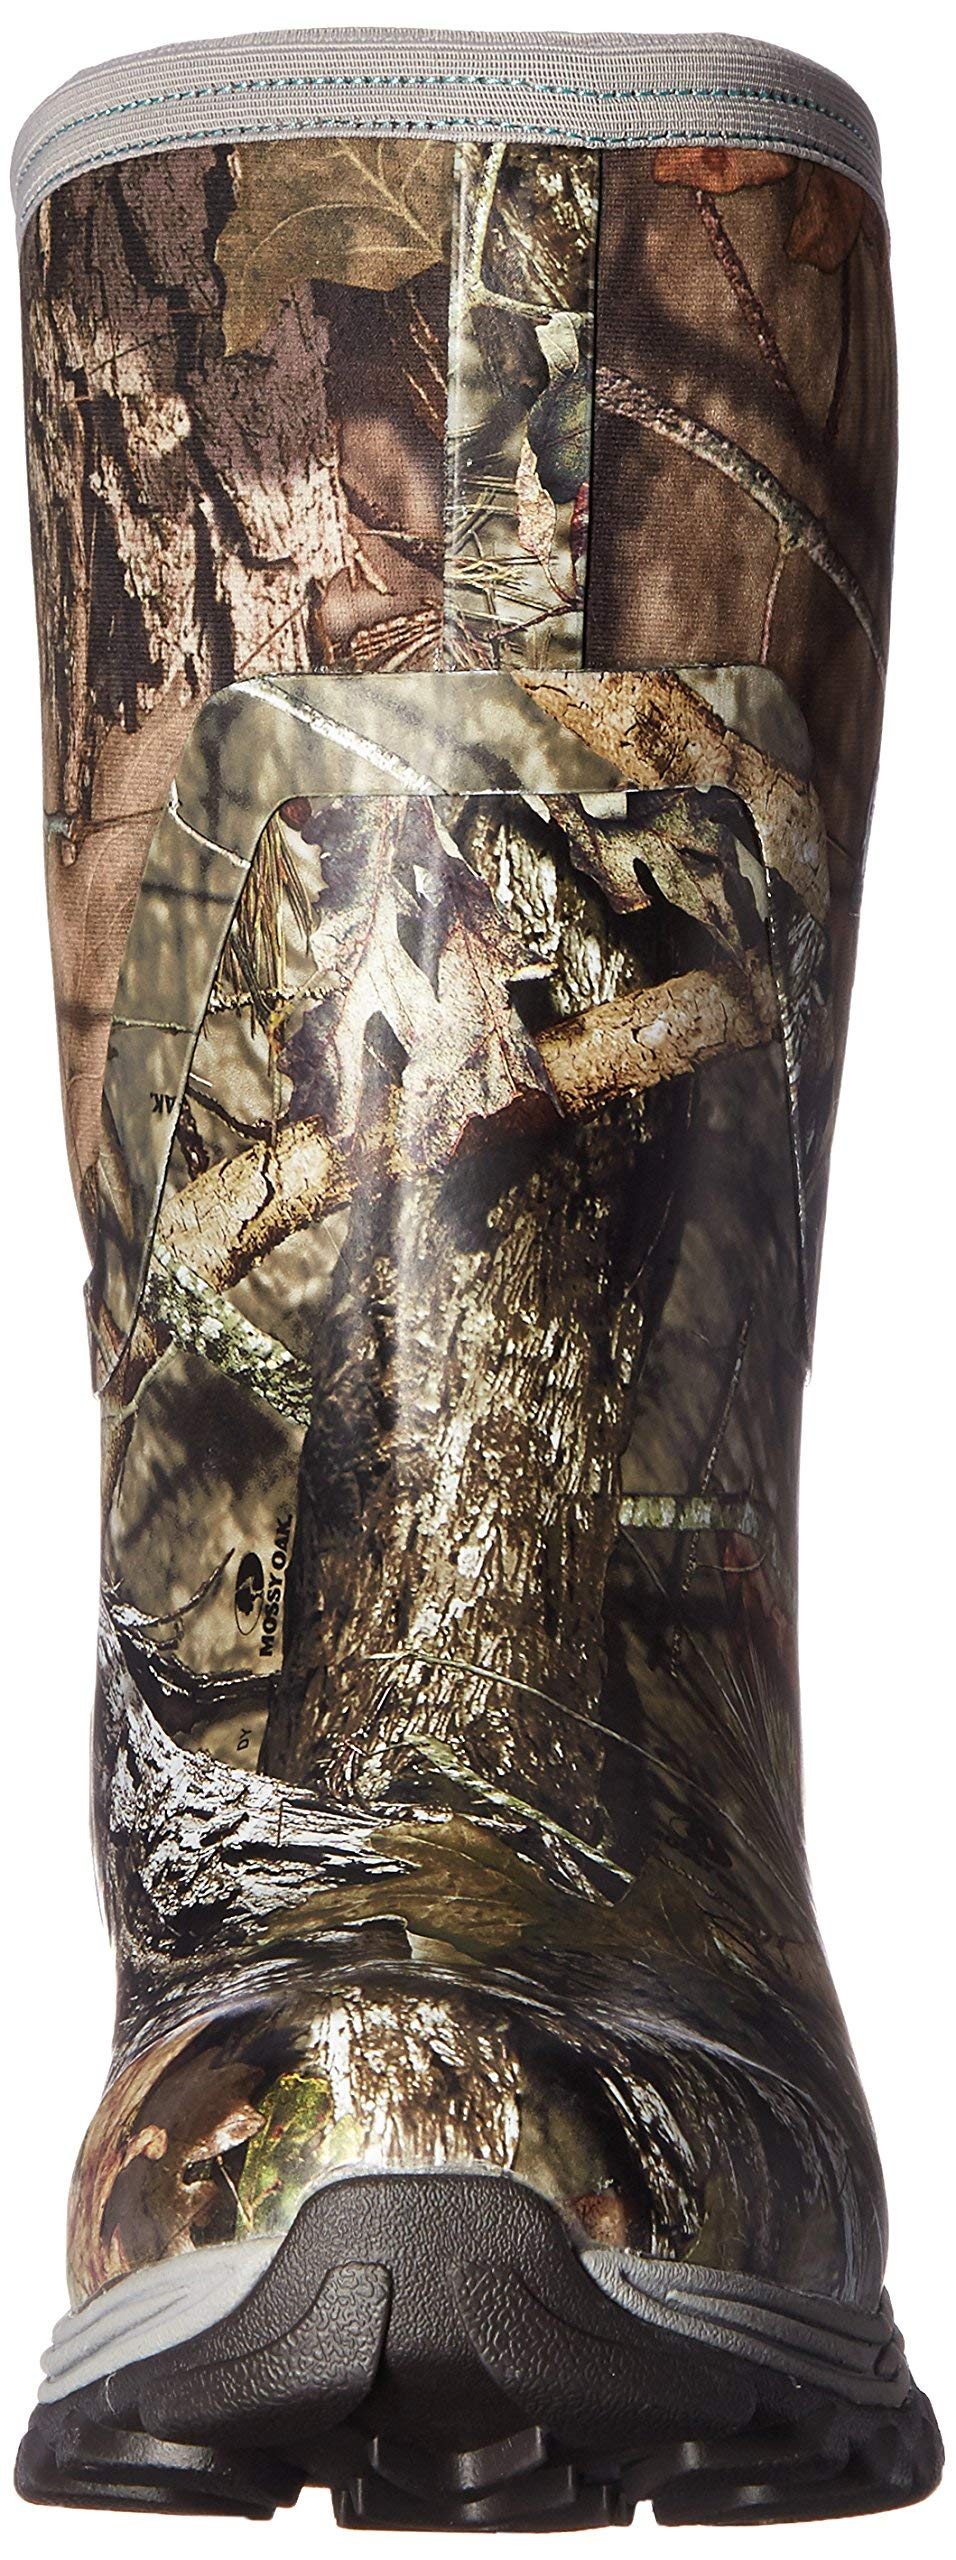 Muck Arctic Hunter Extreme Conditions Rubber Women's Hunting Boots, Mossy Oak/Teal, 8 M US by Muck Boot